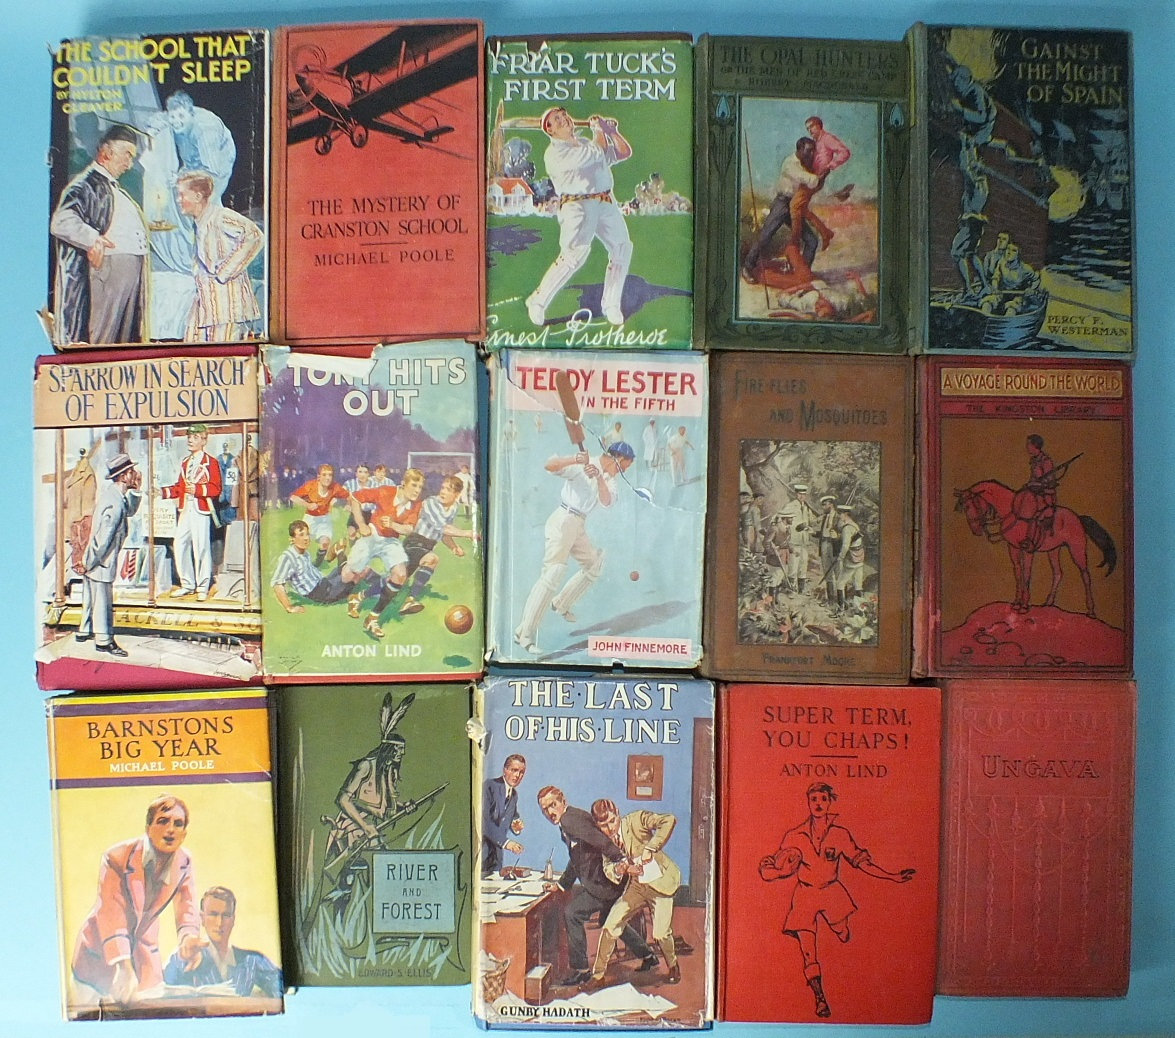 Lot 12 - Westerman (Percy F), 'Gainst the Might of Spain, plts, dec cl, 8vo, nd and fourteen other volumes,